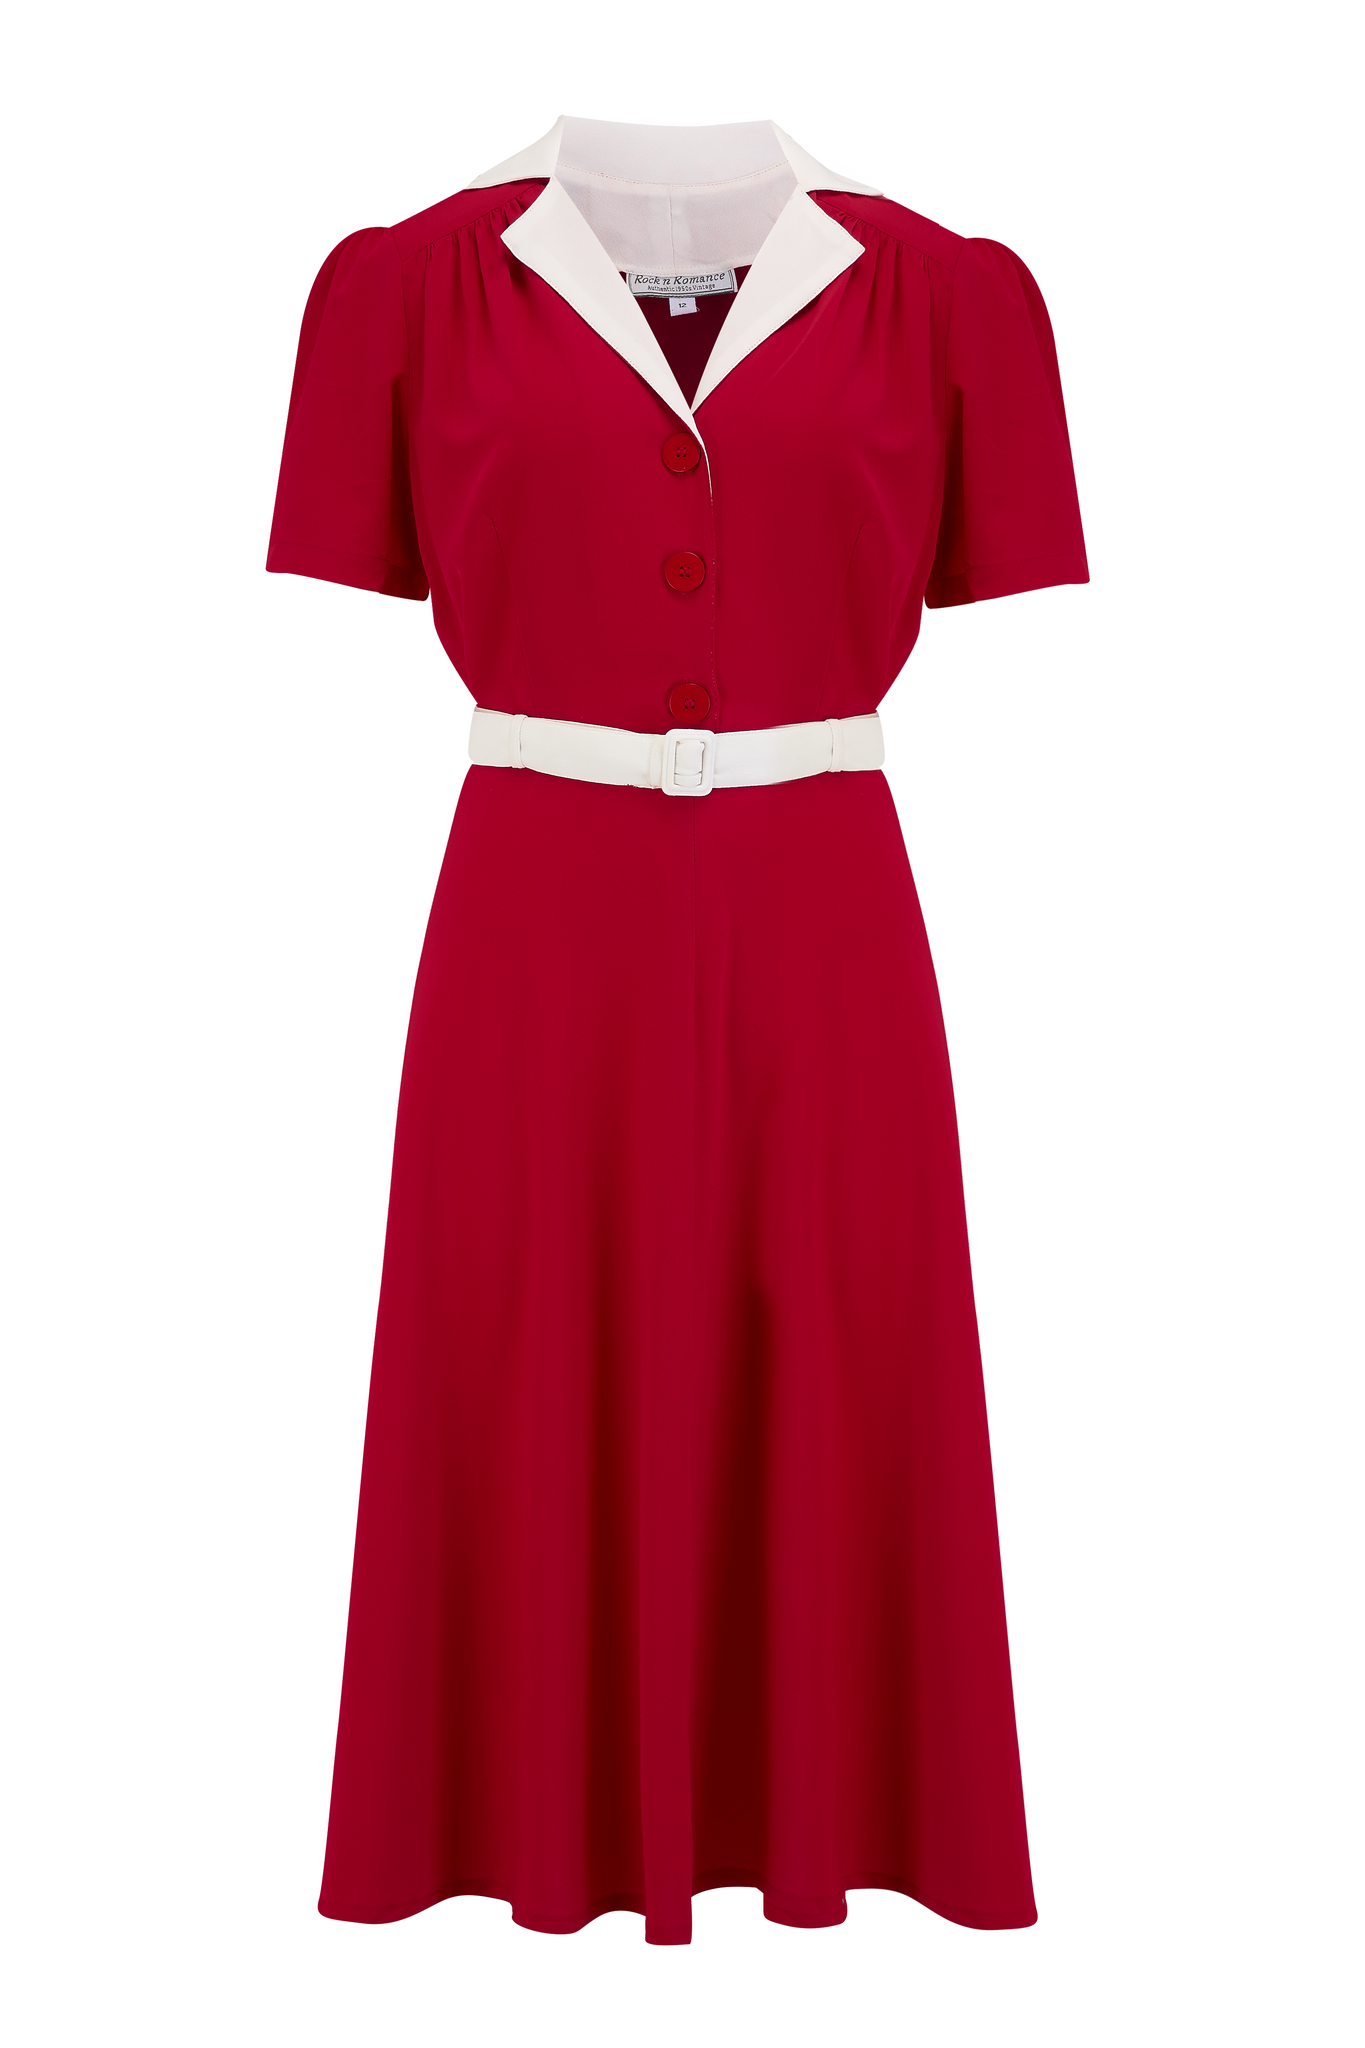 "Rock n Romance The ""Lola"" Shirtwaister Dress in Solid Red with Contrast Collar, Perfect 1950s Style - RocknRomance Clothing"